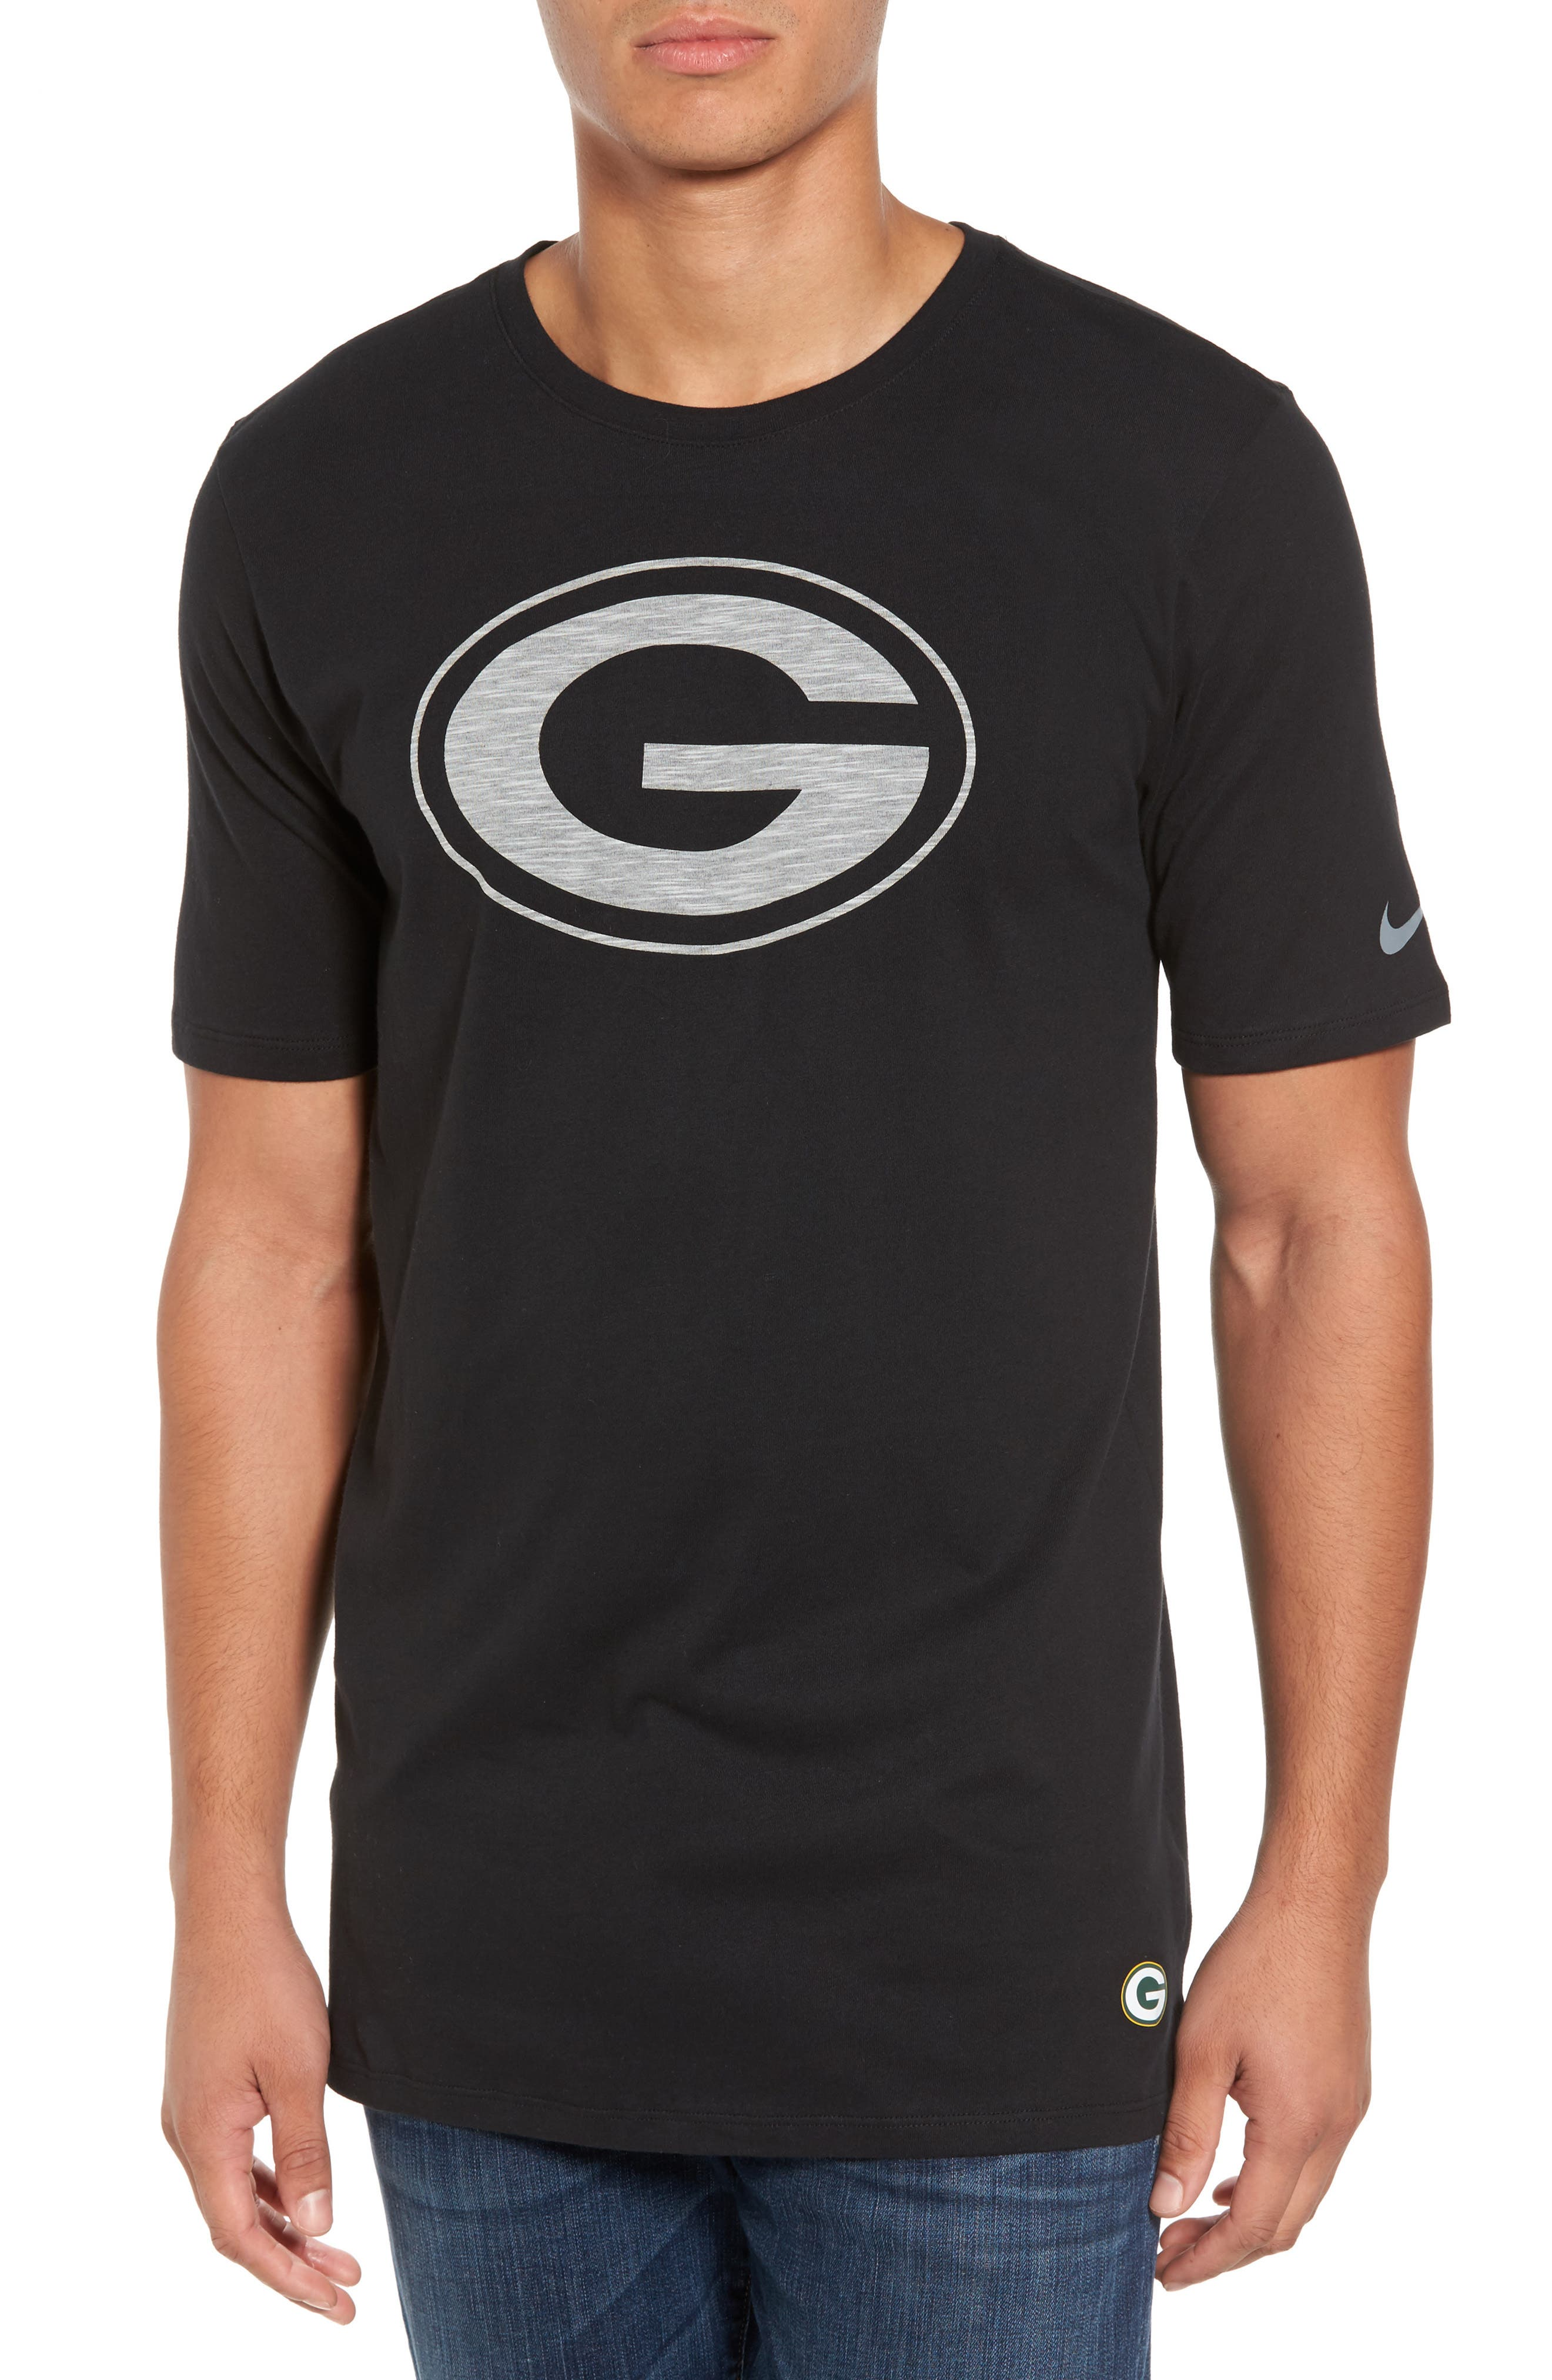 Nike NFL Team Graphic T-Shirt